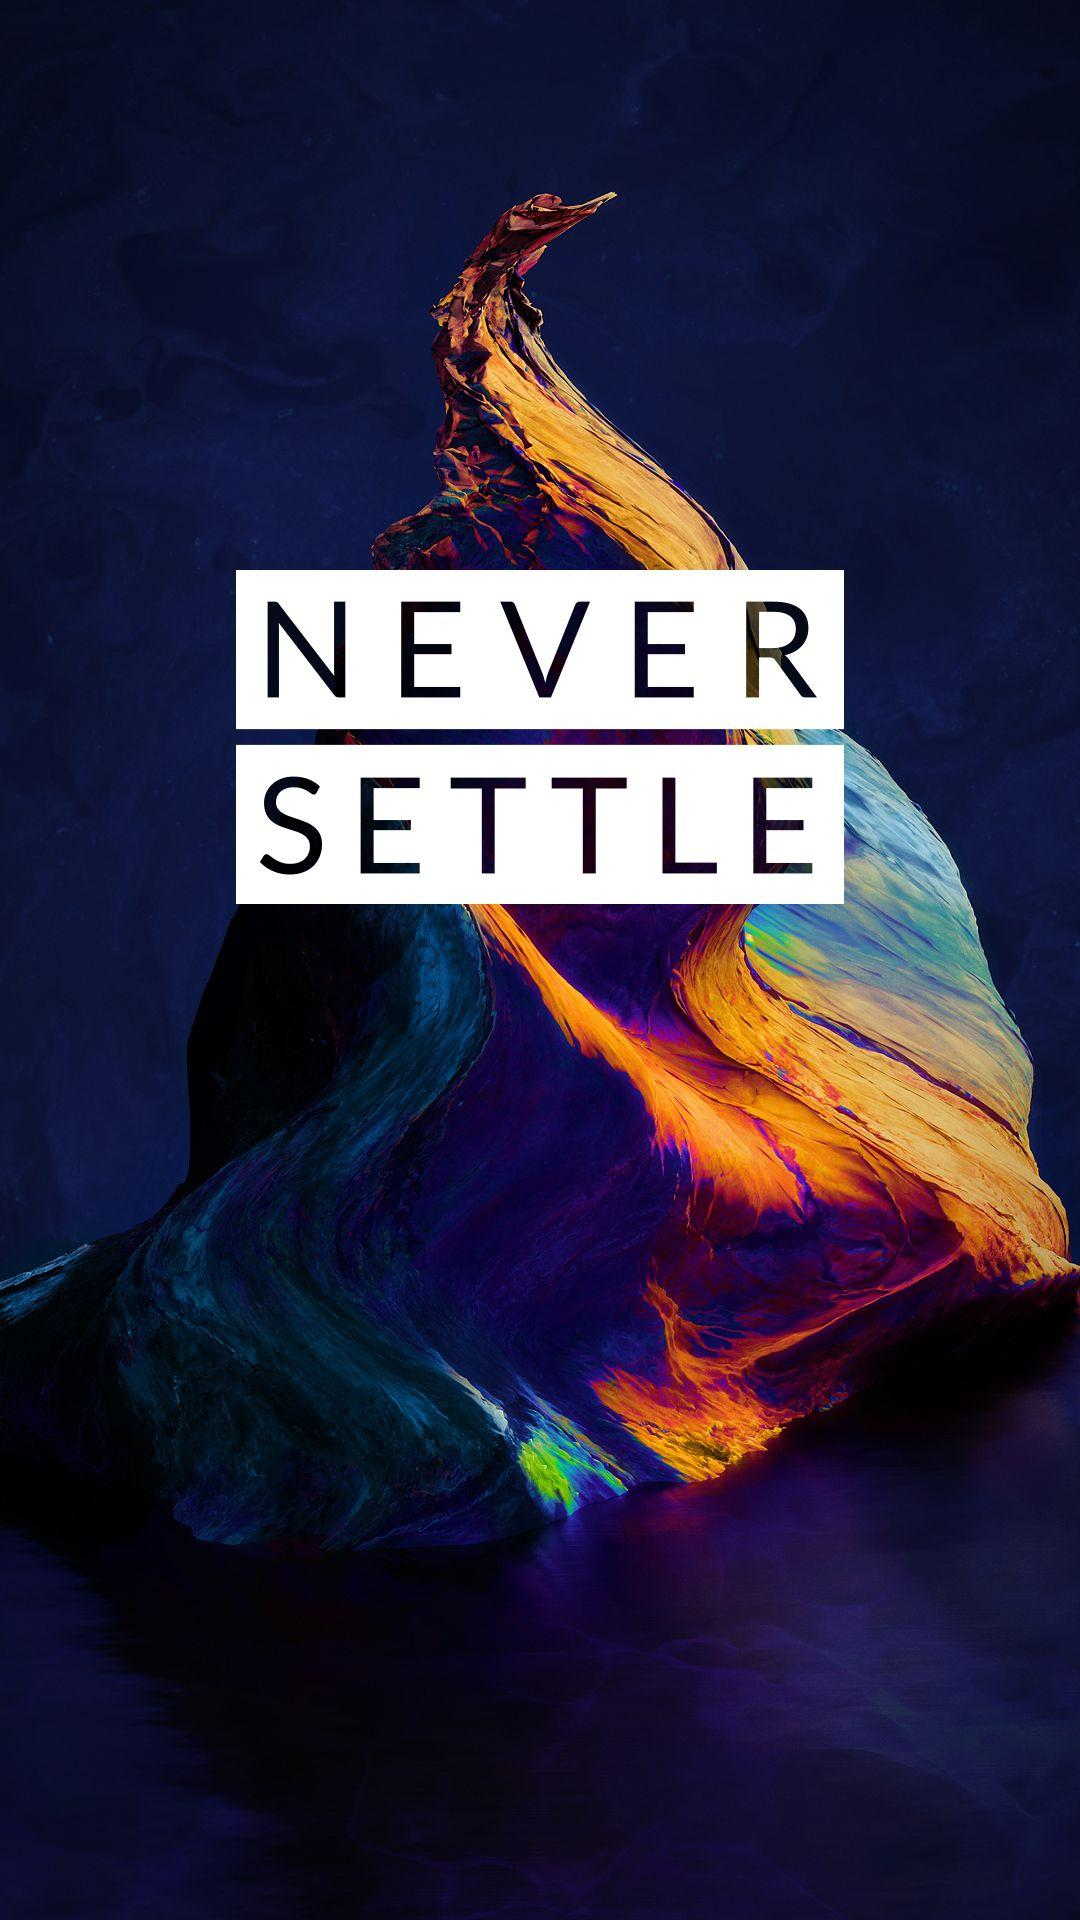 Never Settle Wallpapers - Wallpaper Cave